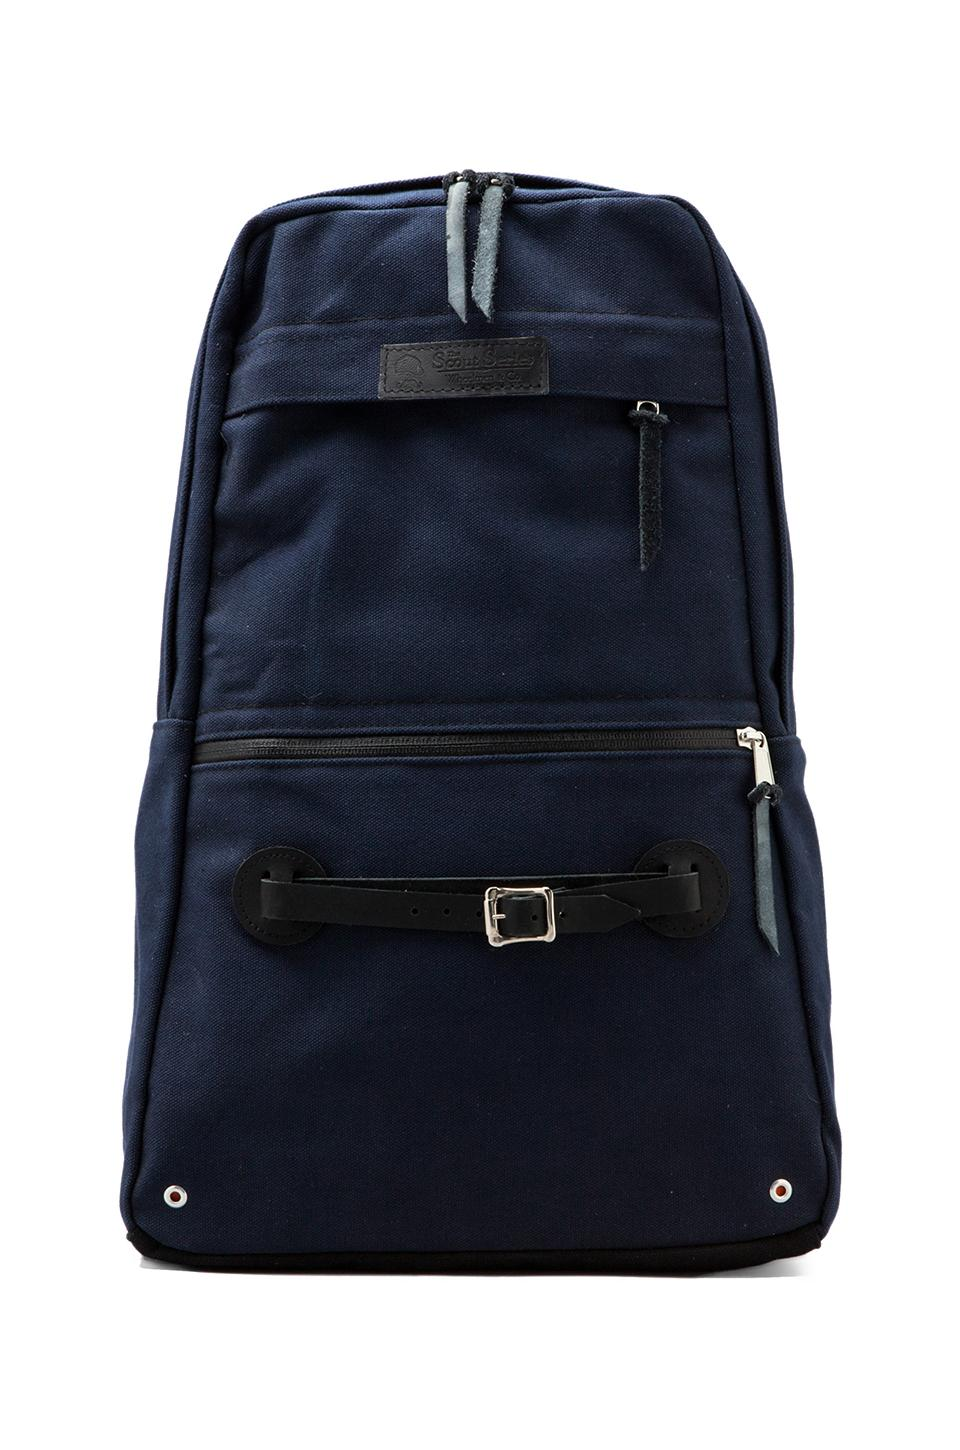 Wheelmen & Co. Scout Daypack in Navy